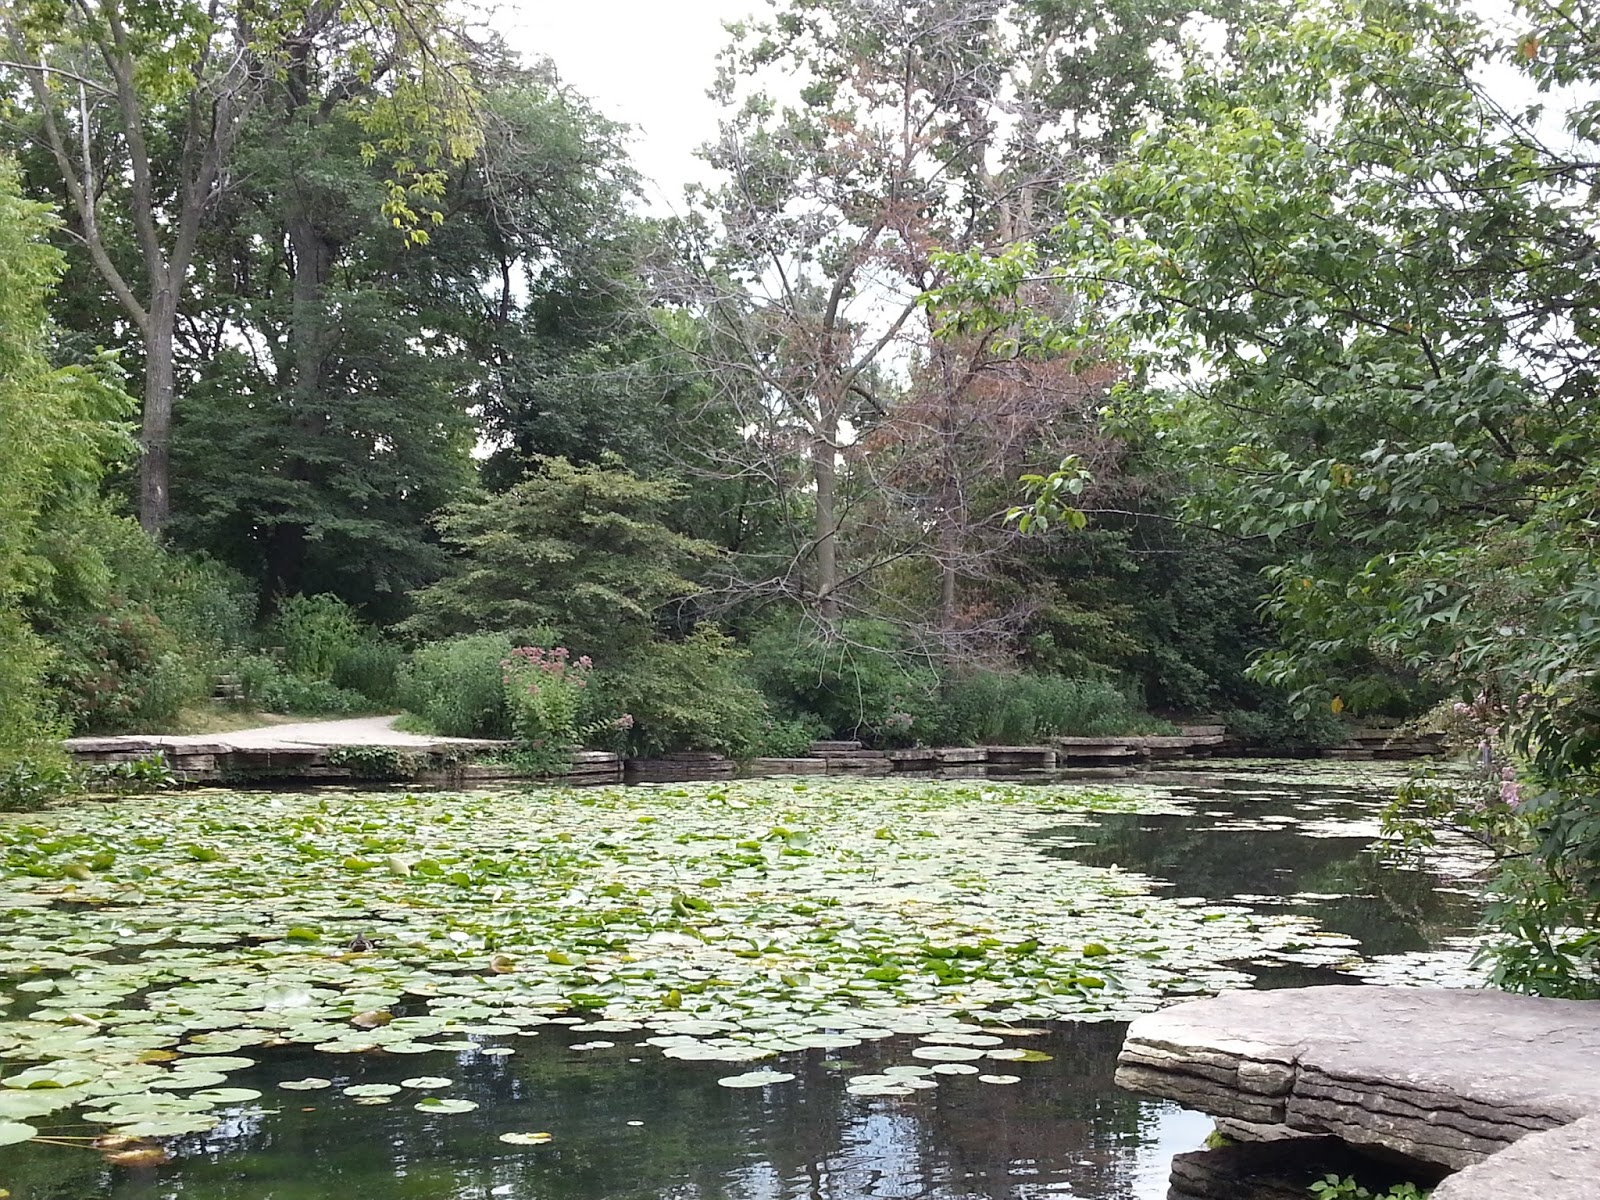 The Chicago Real Estate Local: Free kids fun: Sculpture, spelunking and giraffe calling in ...